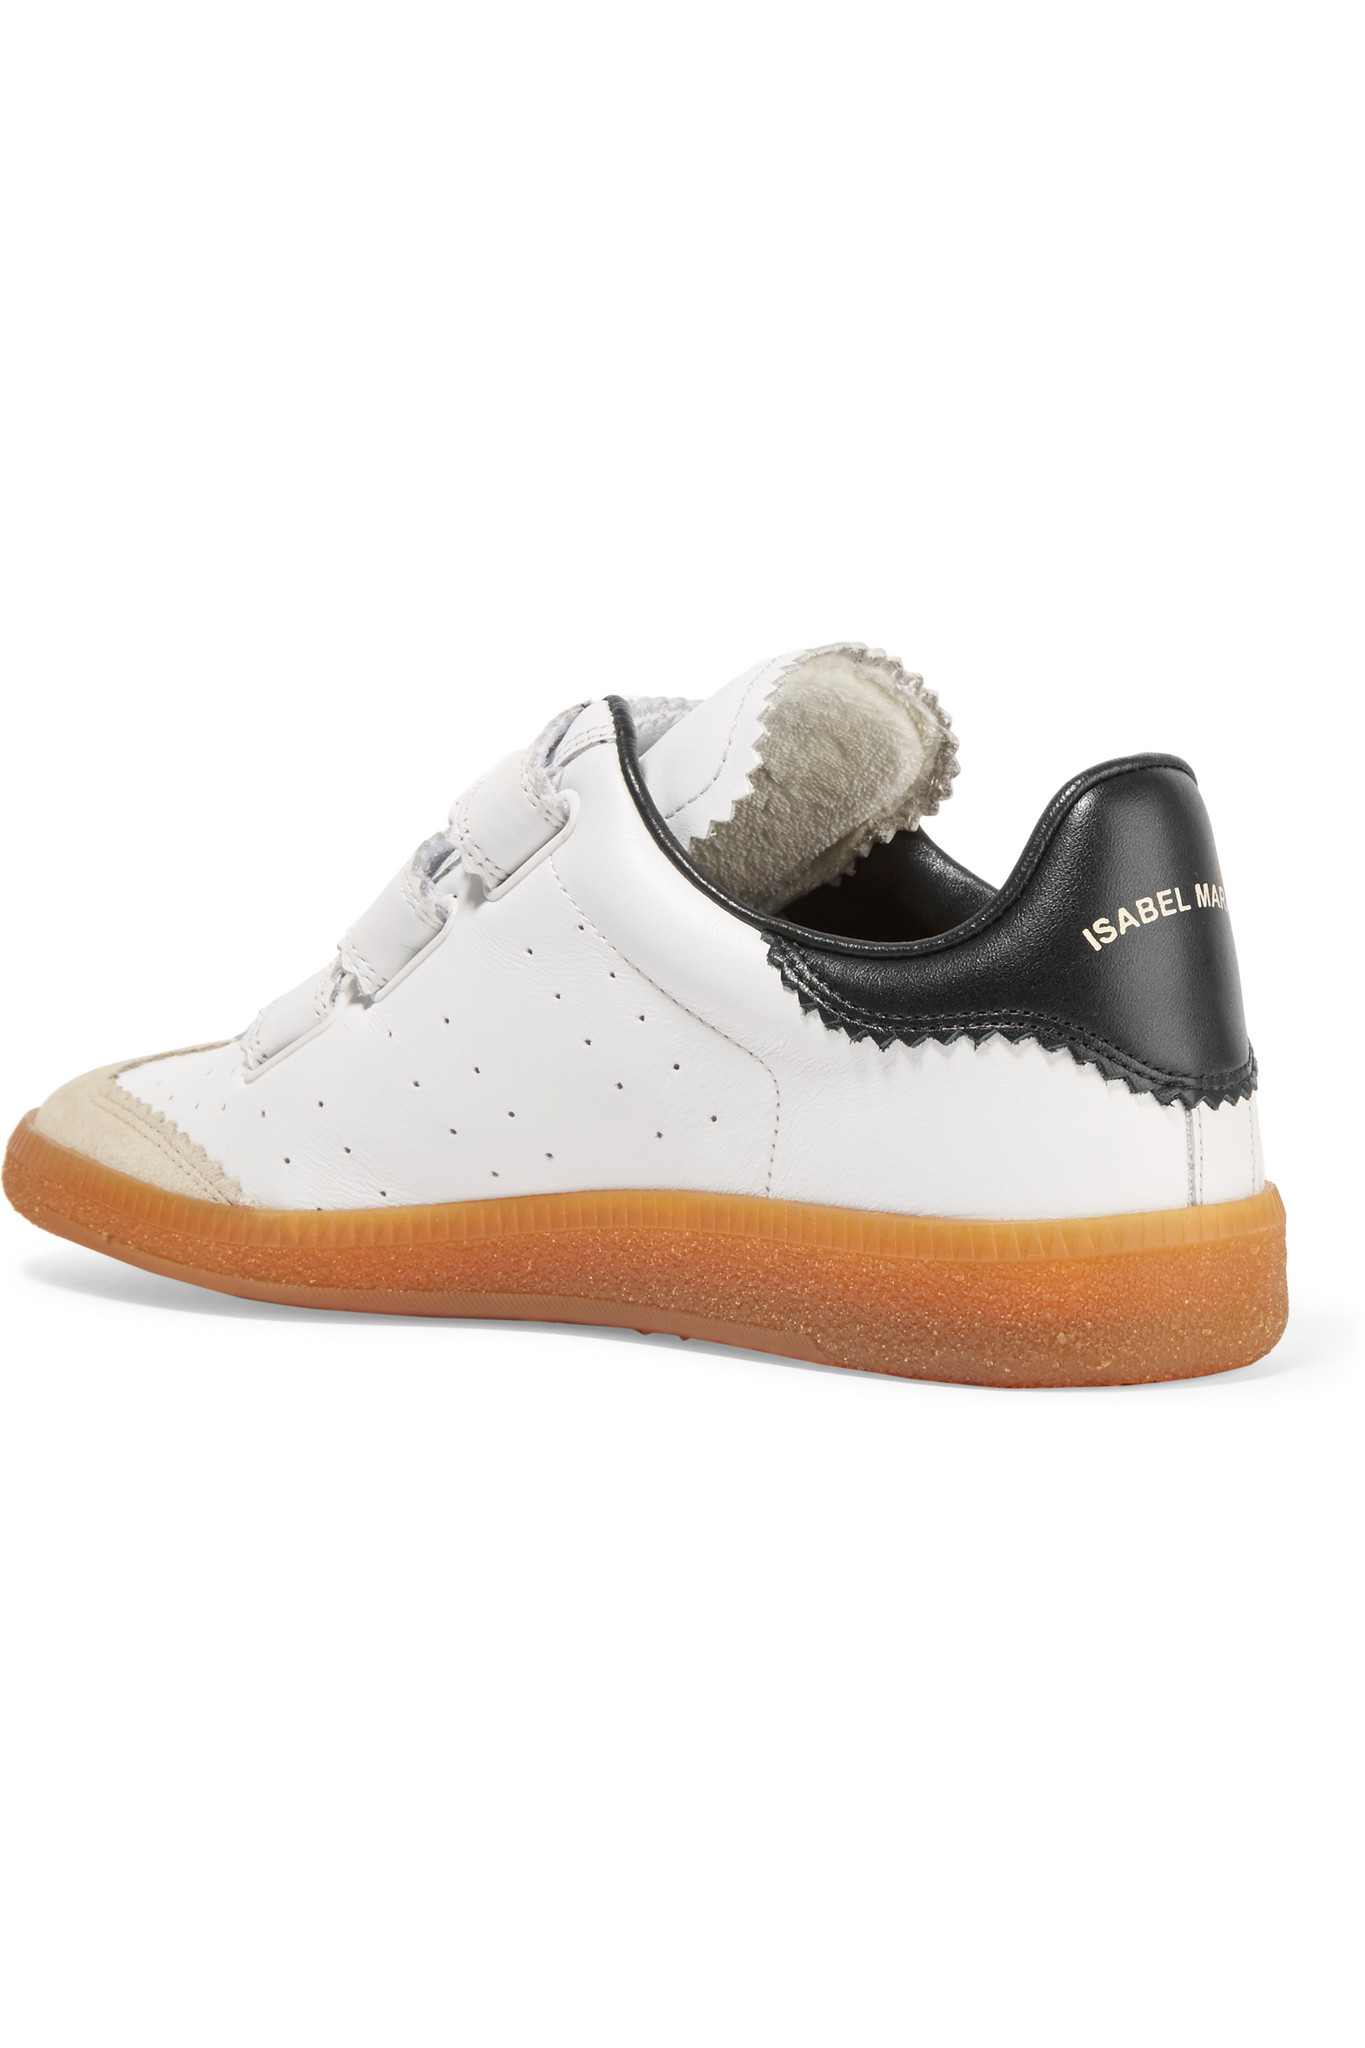 lyst isabel marant toile beth perforated leather sneakers in white. Black Bedroom Furniture Sets. Home Design Ideas